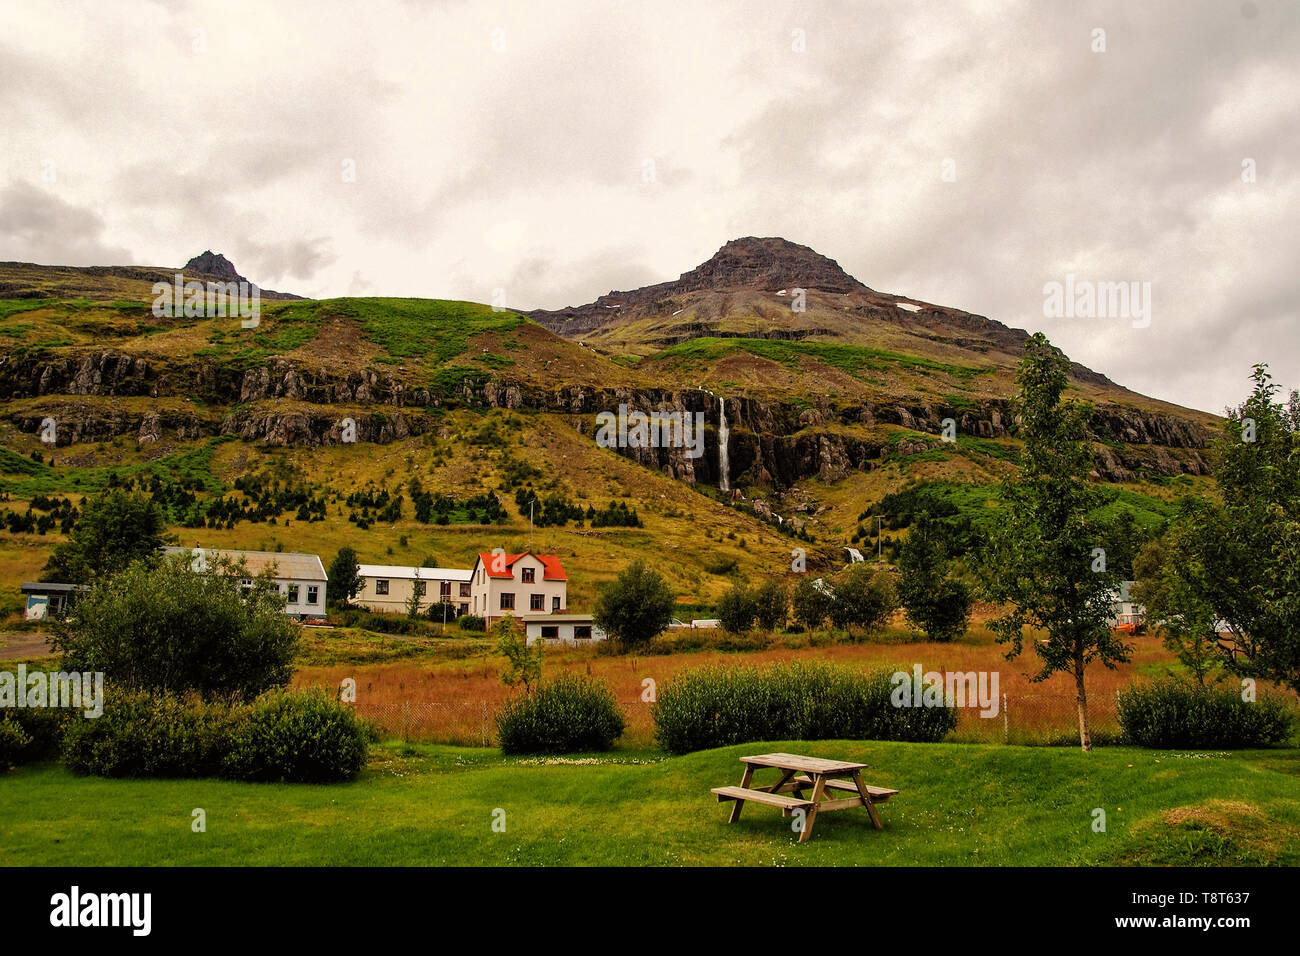 Summer vacation. Travelling and wanderlust. Mountain village on cloudy sky in Sejdisfjordur, Iceland. Country houses on mountain landscape. Living a rural lifestyle - Stock Image